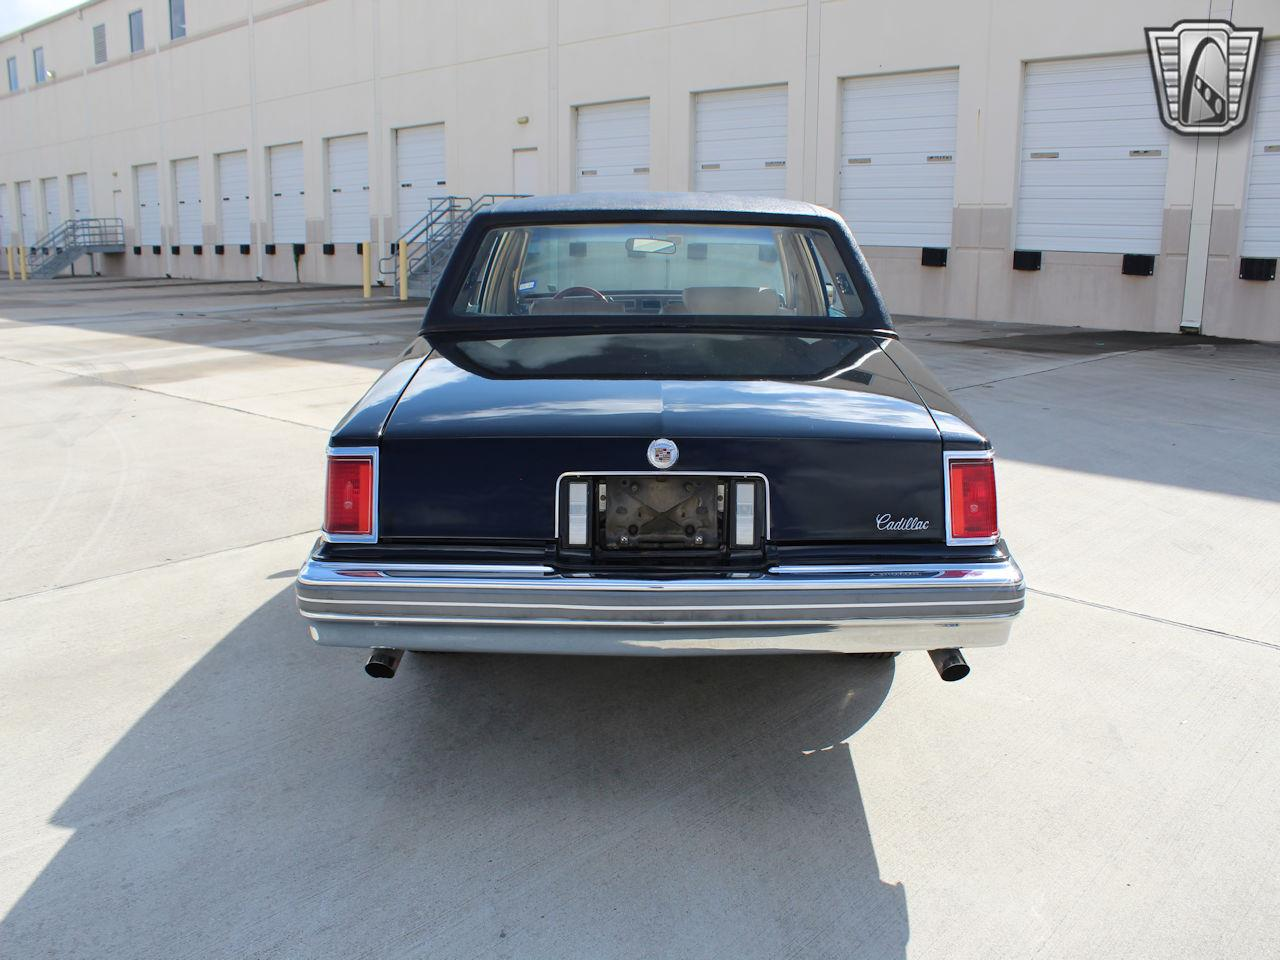 1977 Cadillac Seville (CC-1419128) for sale in O'Fallon, Illinois